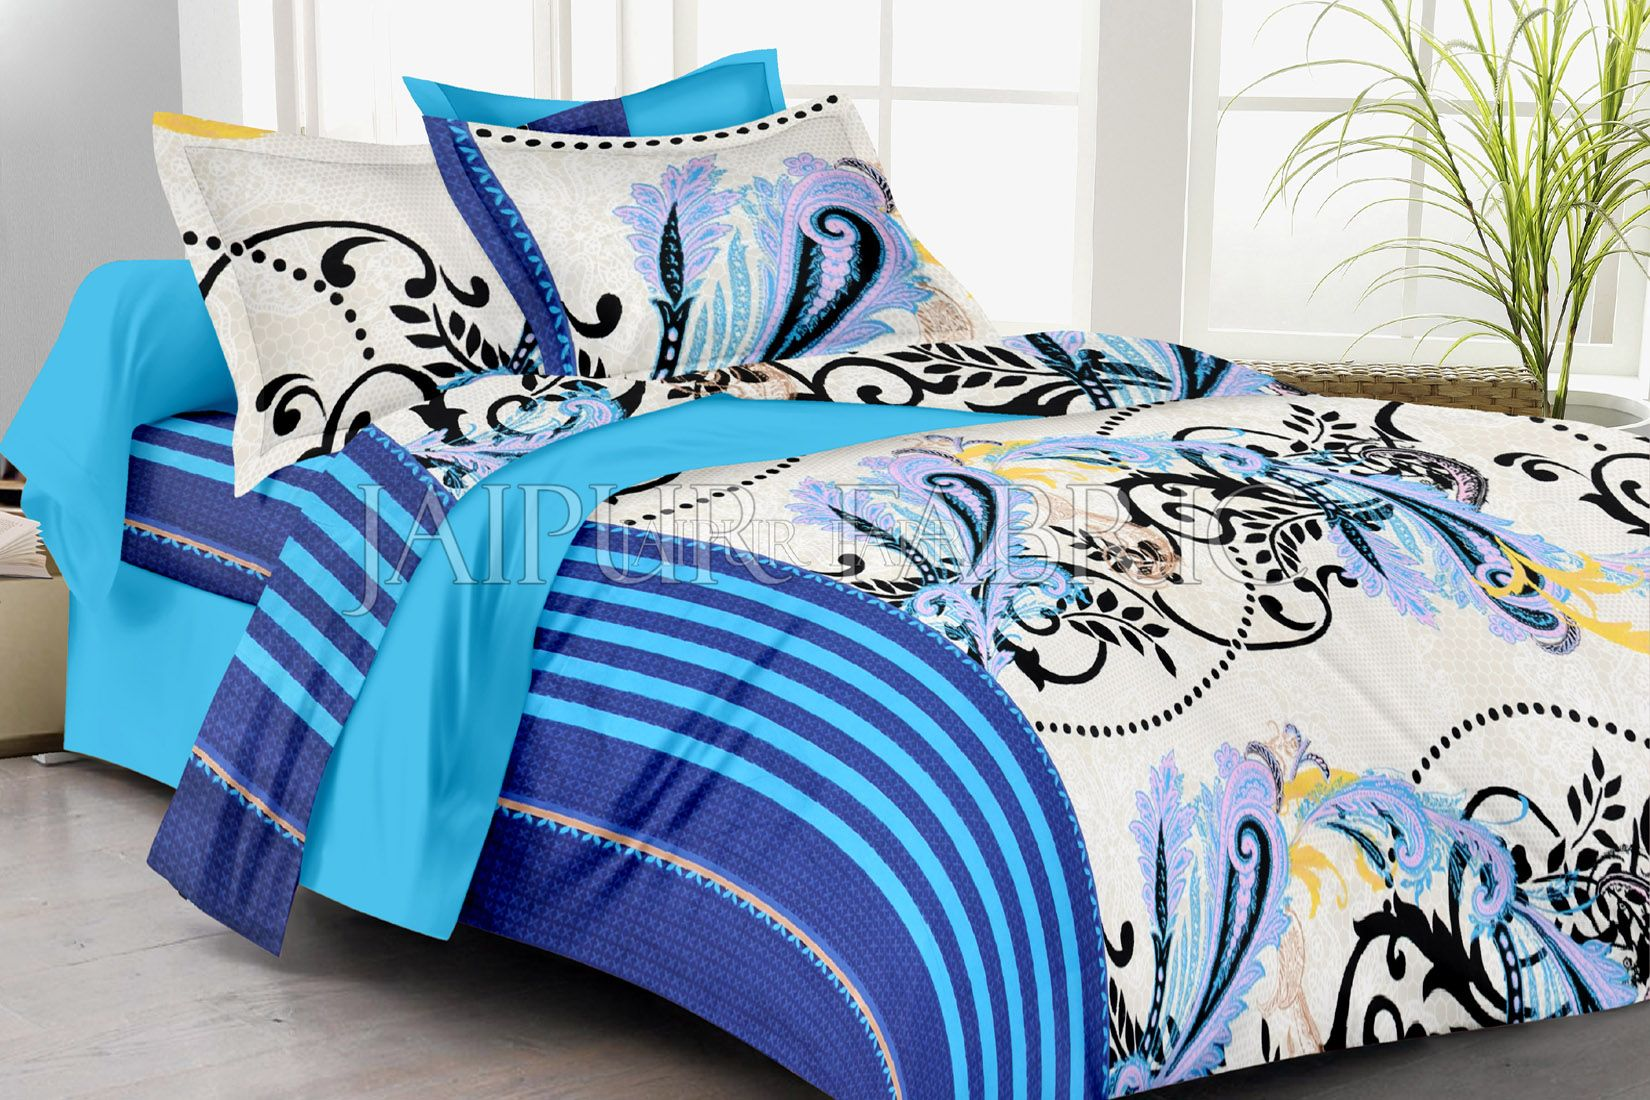 Blue Border White Base Plant Print Double Bed Sheet